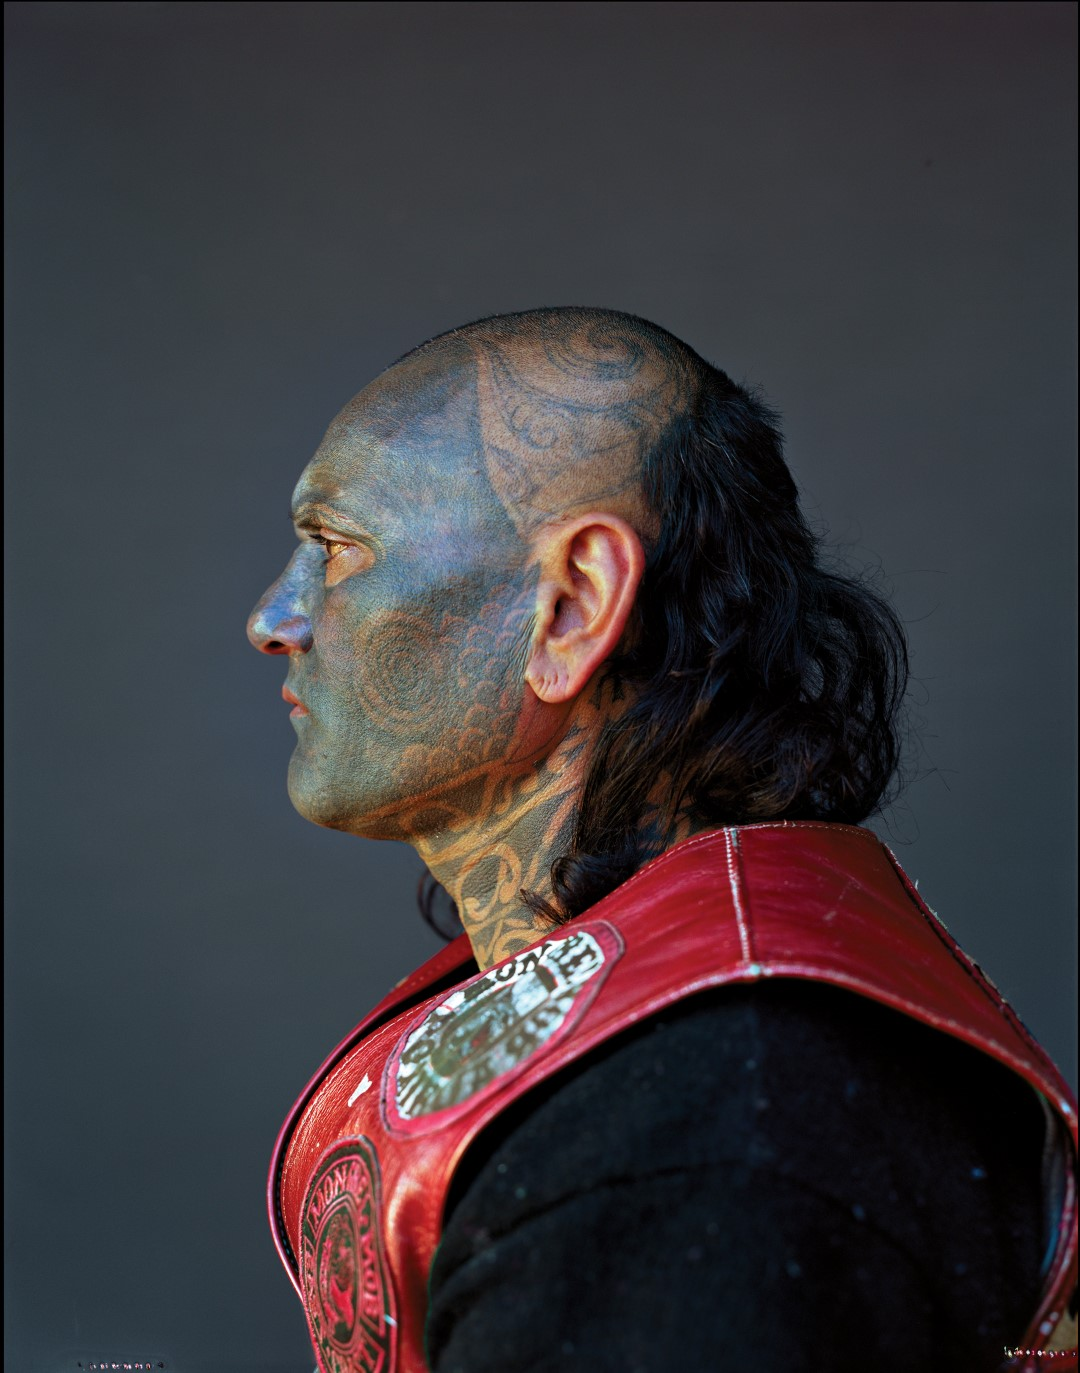 Mongrel Mob portraits show another side to gang